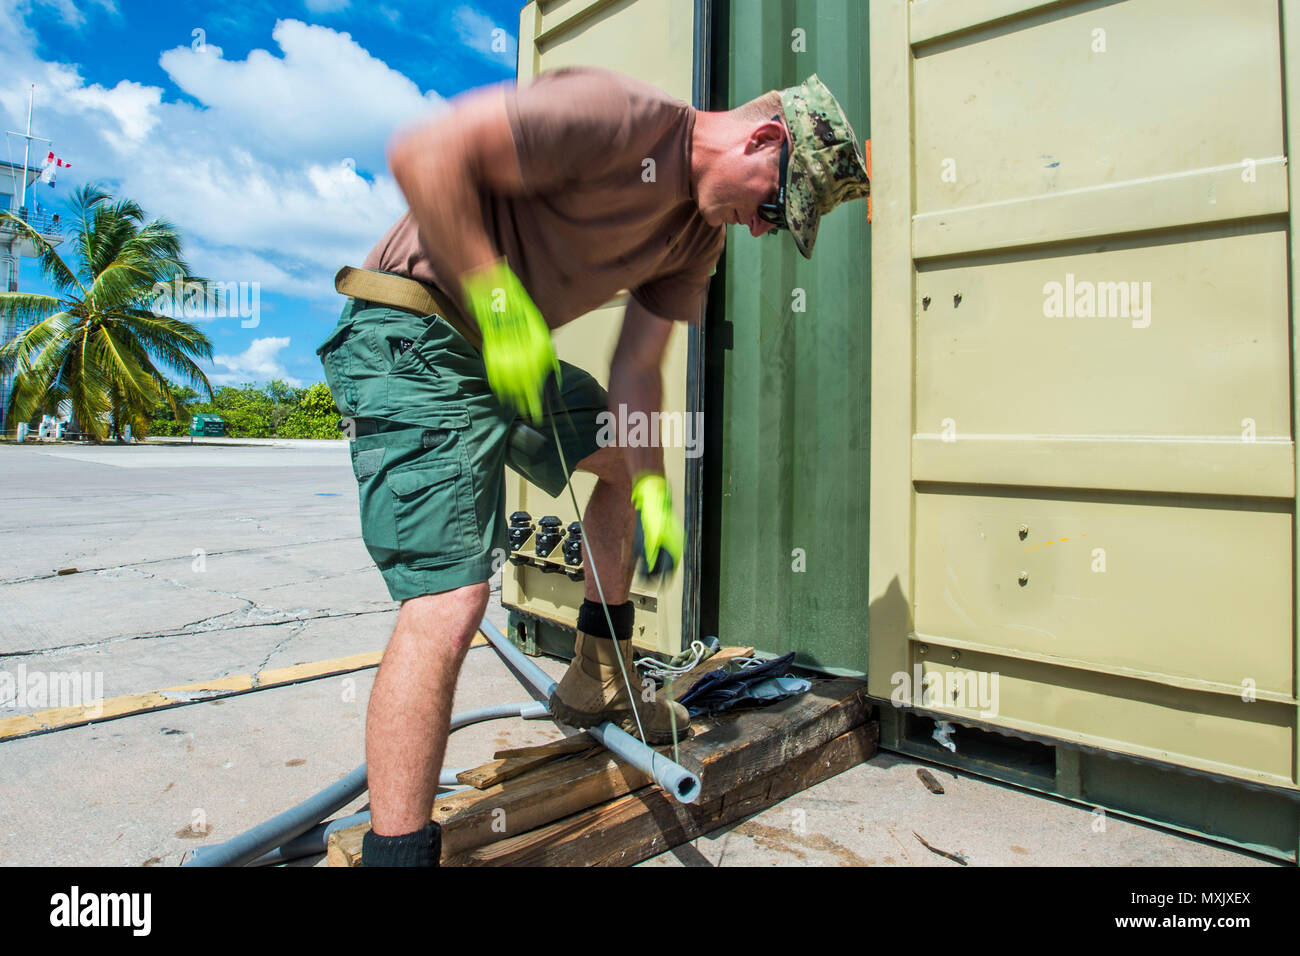 Chief Petty Officer Jesse Hamblin, assigned to Underwater Construction Team (UCT) 2's Construction Dive Detachment Bravo (CDDB), demonstrates using 550 cord to cut PVC piping in Diego Garcia, British Indian Ocean Territory, Nov. 10, 2016.  CDDB is performing precision underwater demolition and light salvage to remove obstructions from Diego Garcia's deep draft wharf. CDDB is on the third stop of their deployment, where they are conducting inspection, maintenance, and repair of various underwater and waterfront facilities while under Commander, Task Force (CTF) 75, the primary expeditionary tas Stock Photo